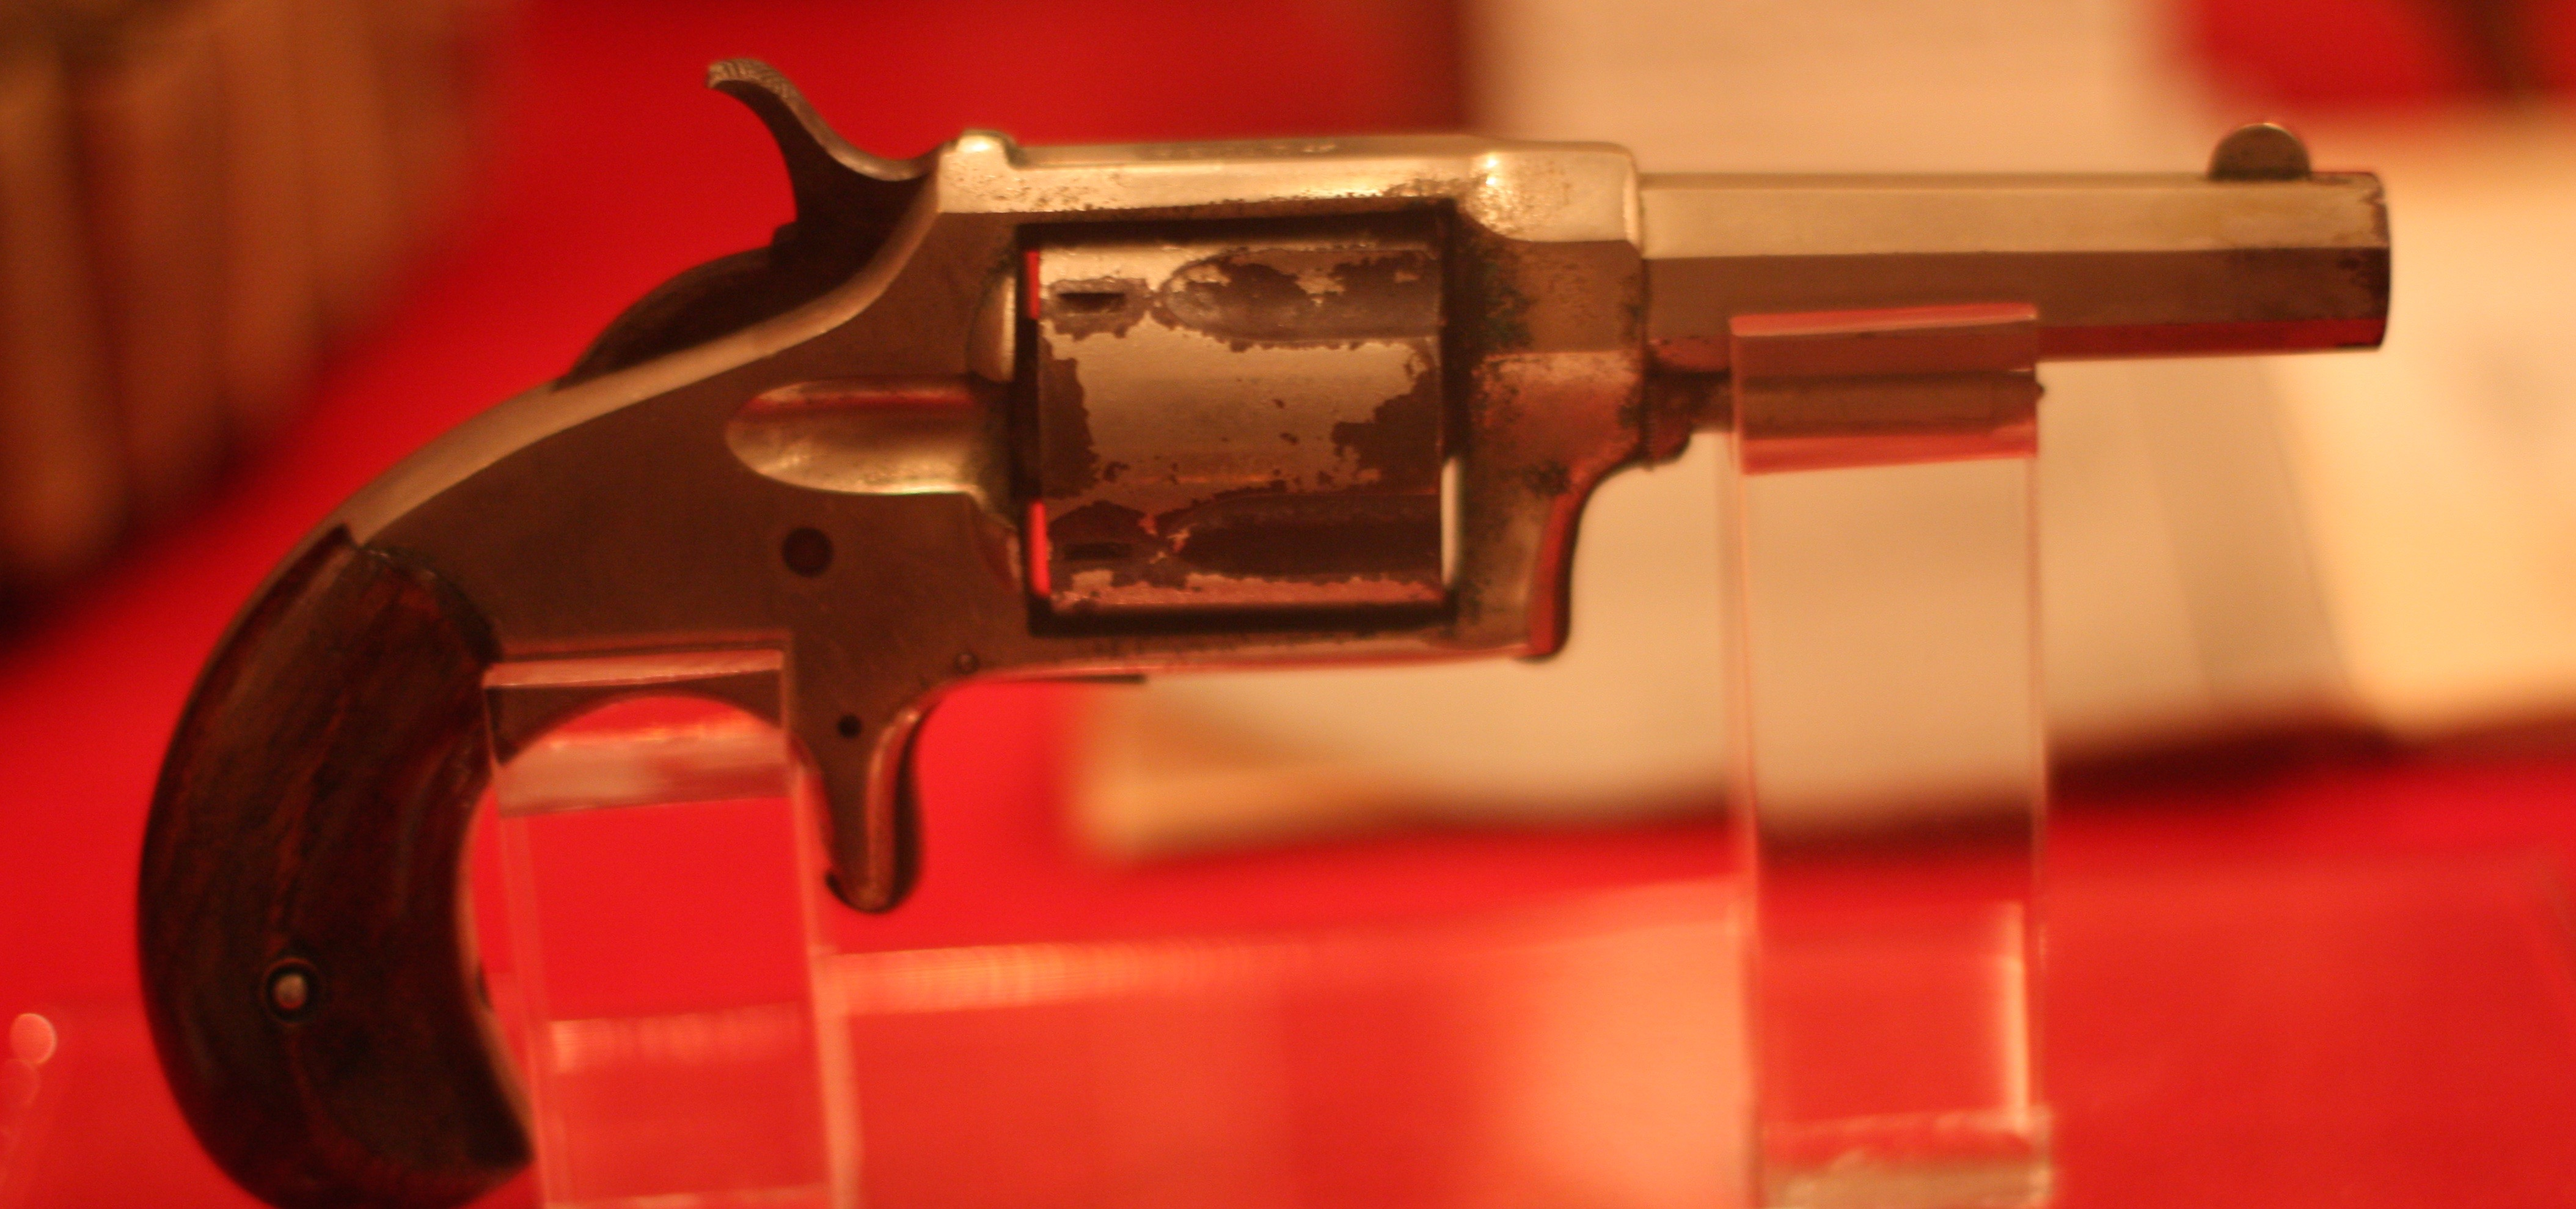 The governor general s foot guards - Pistol Belonging To Csgt Winter